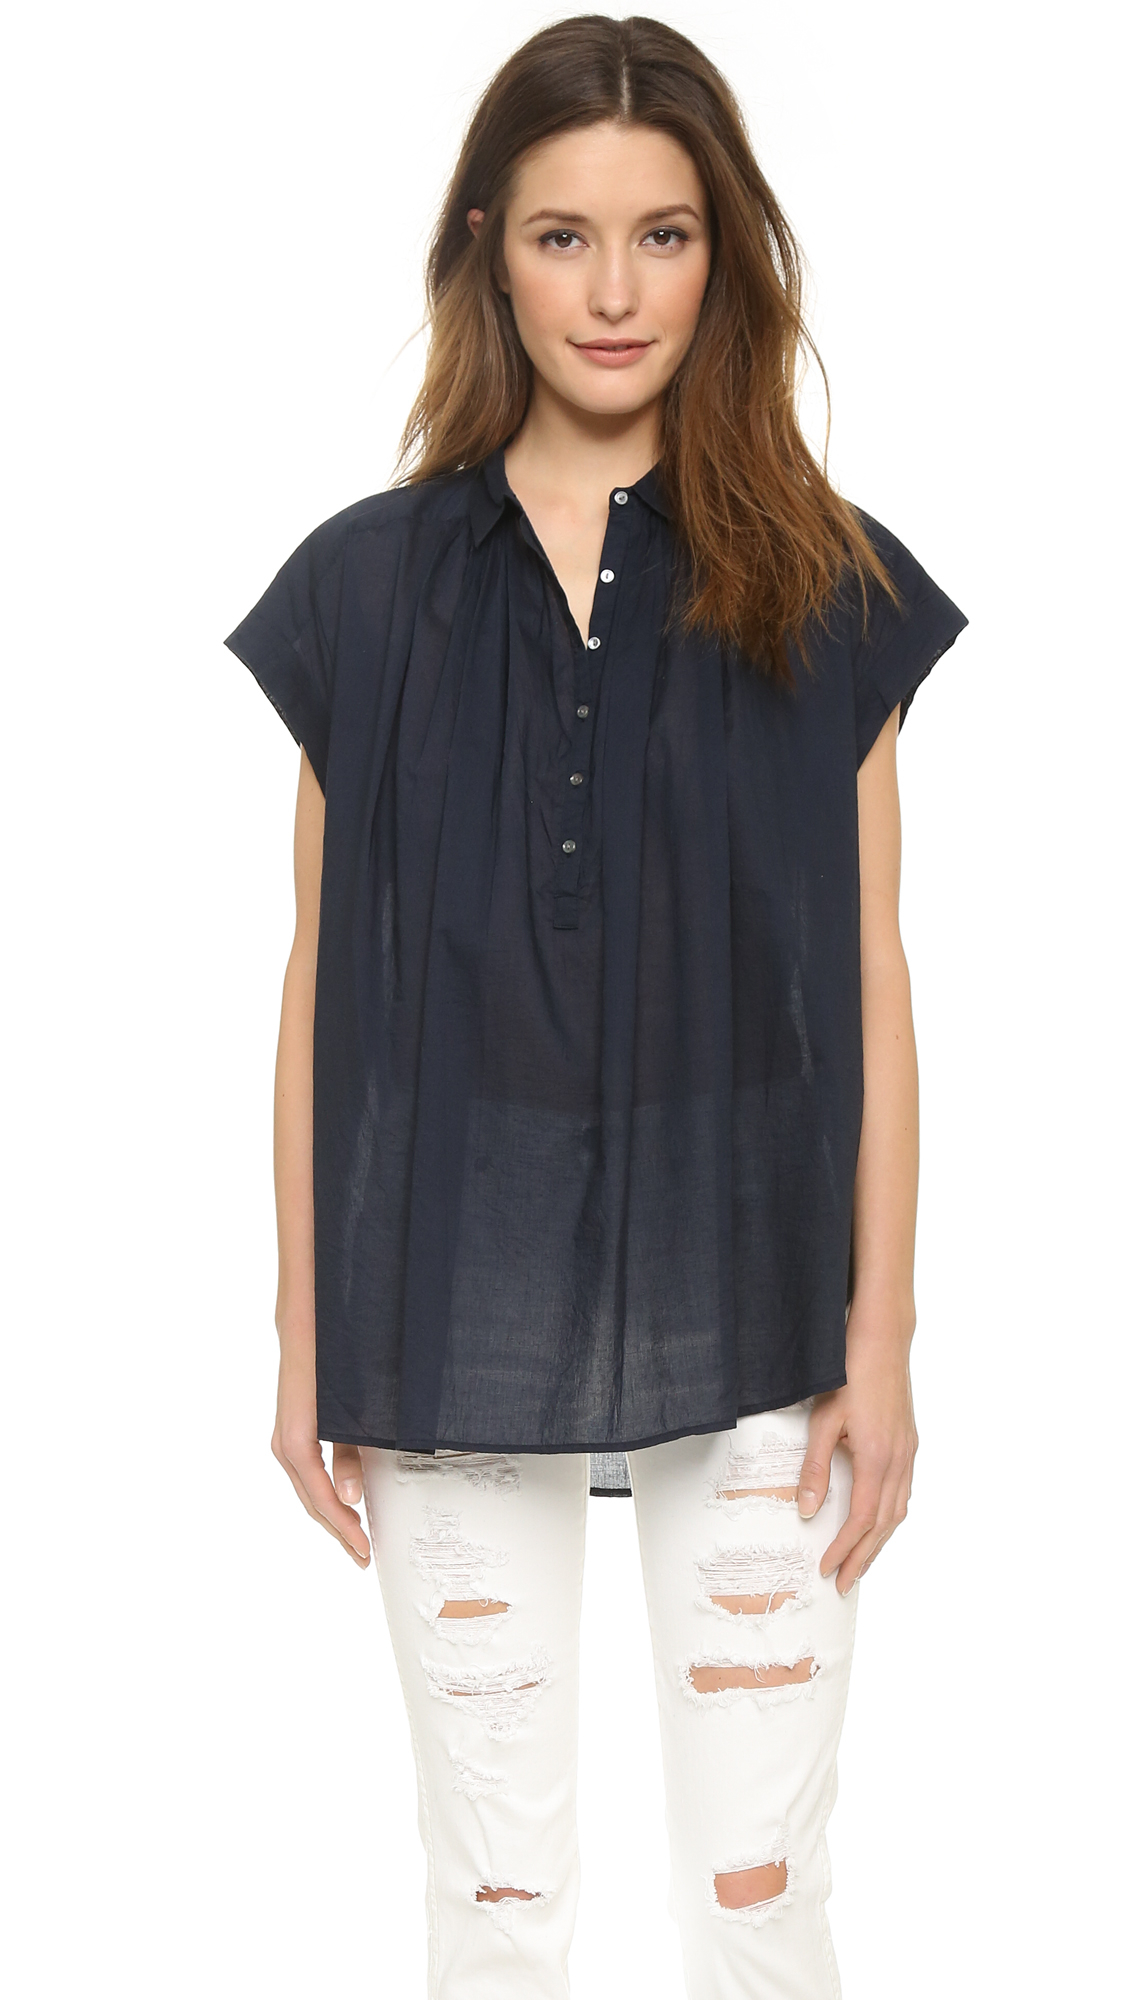 Womens Navy Blue Short Sleeve Blouse 26